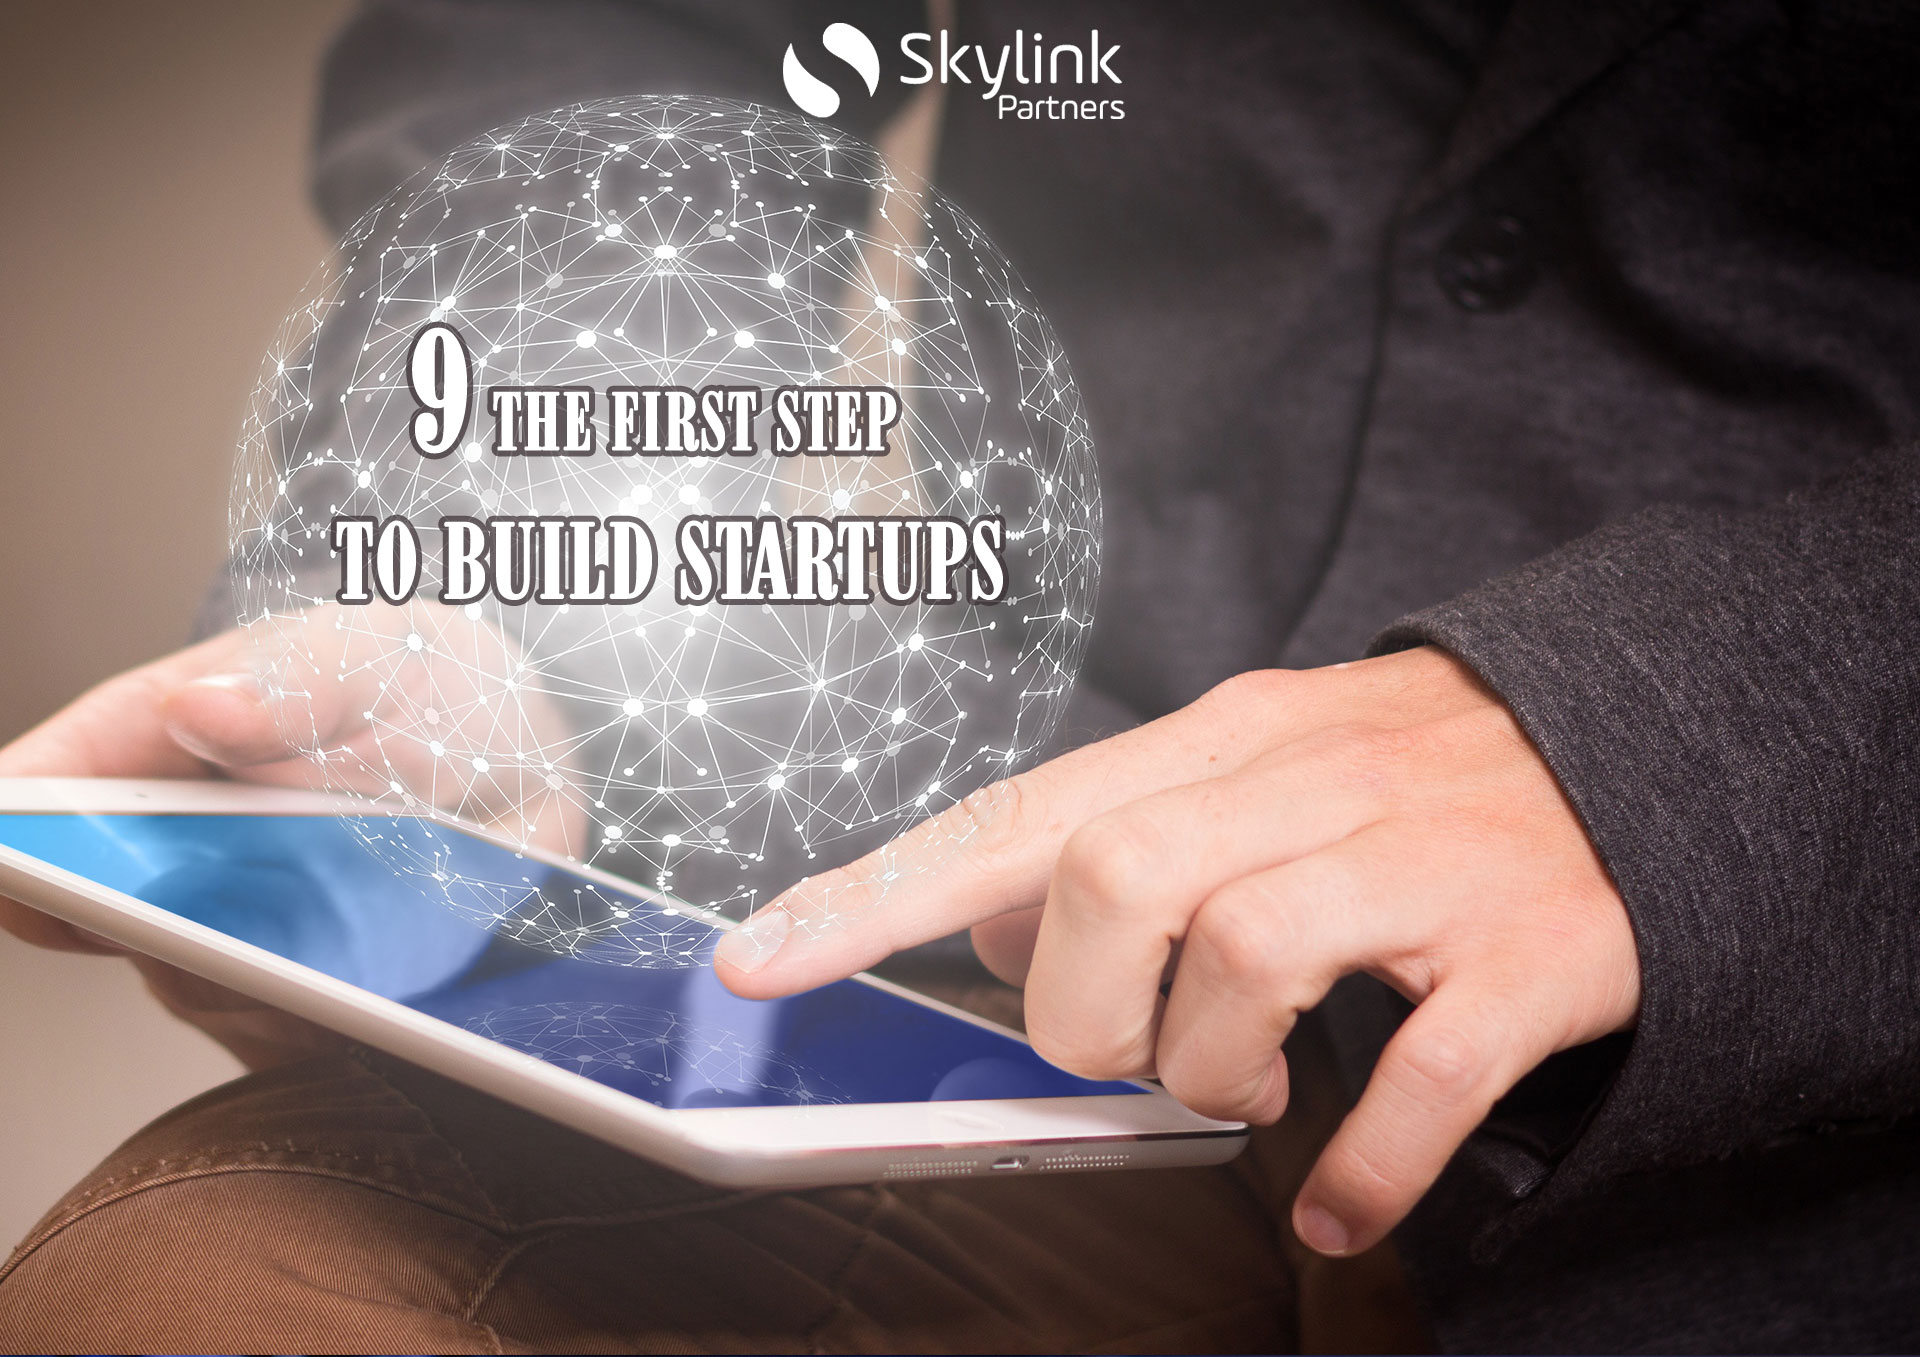 9 The First Step to Build Startups